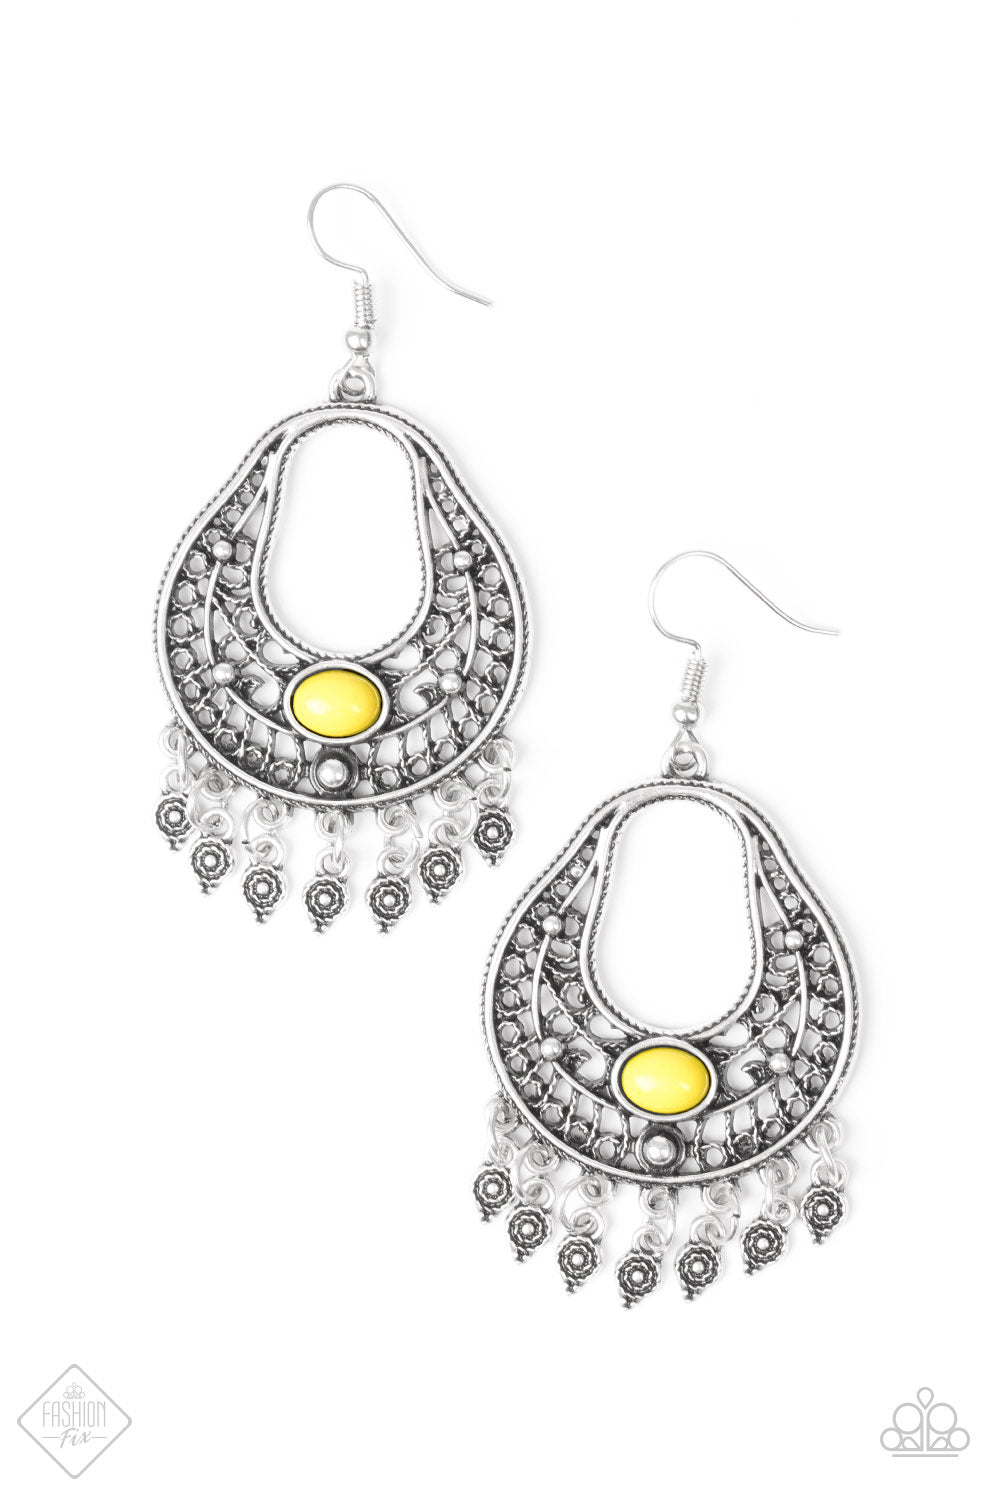 Shoreside Social - Yellow Paparazzi Earrings - SavvyChicksJewelry